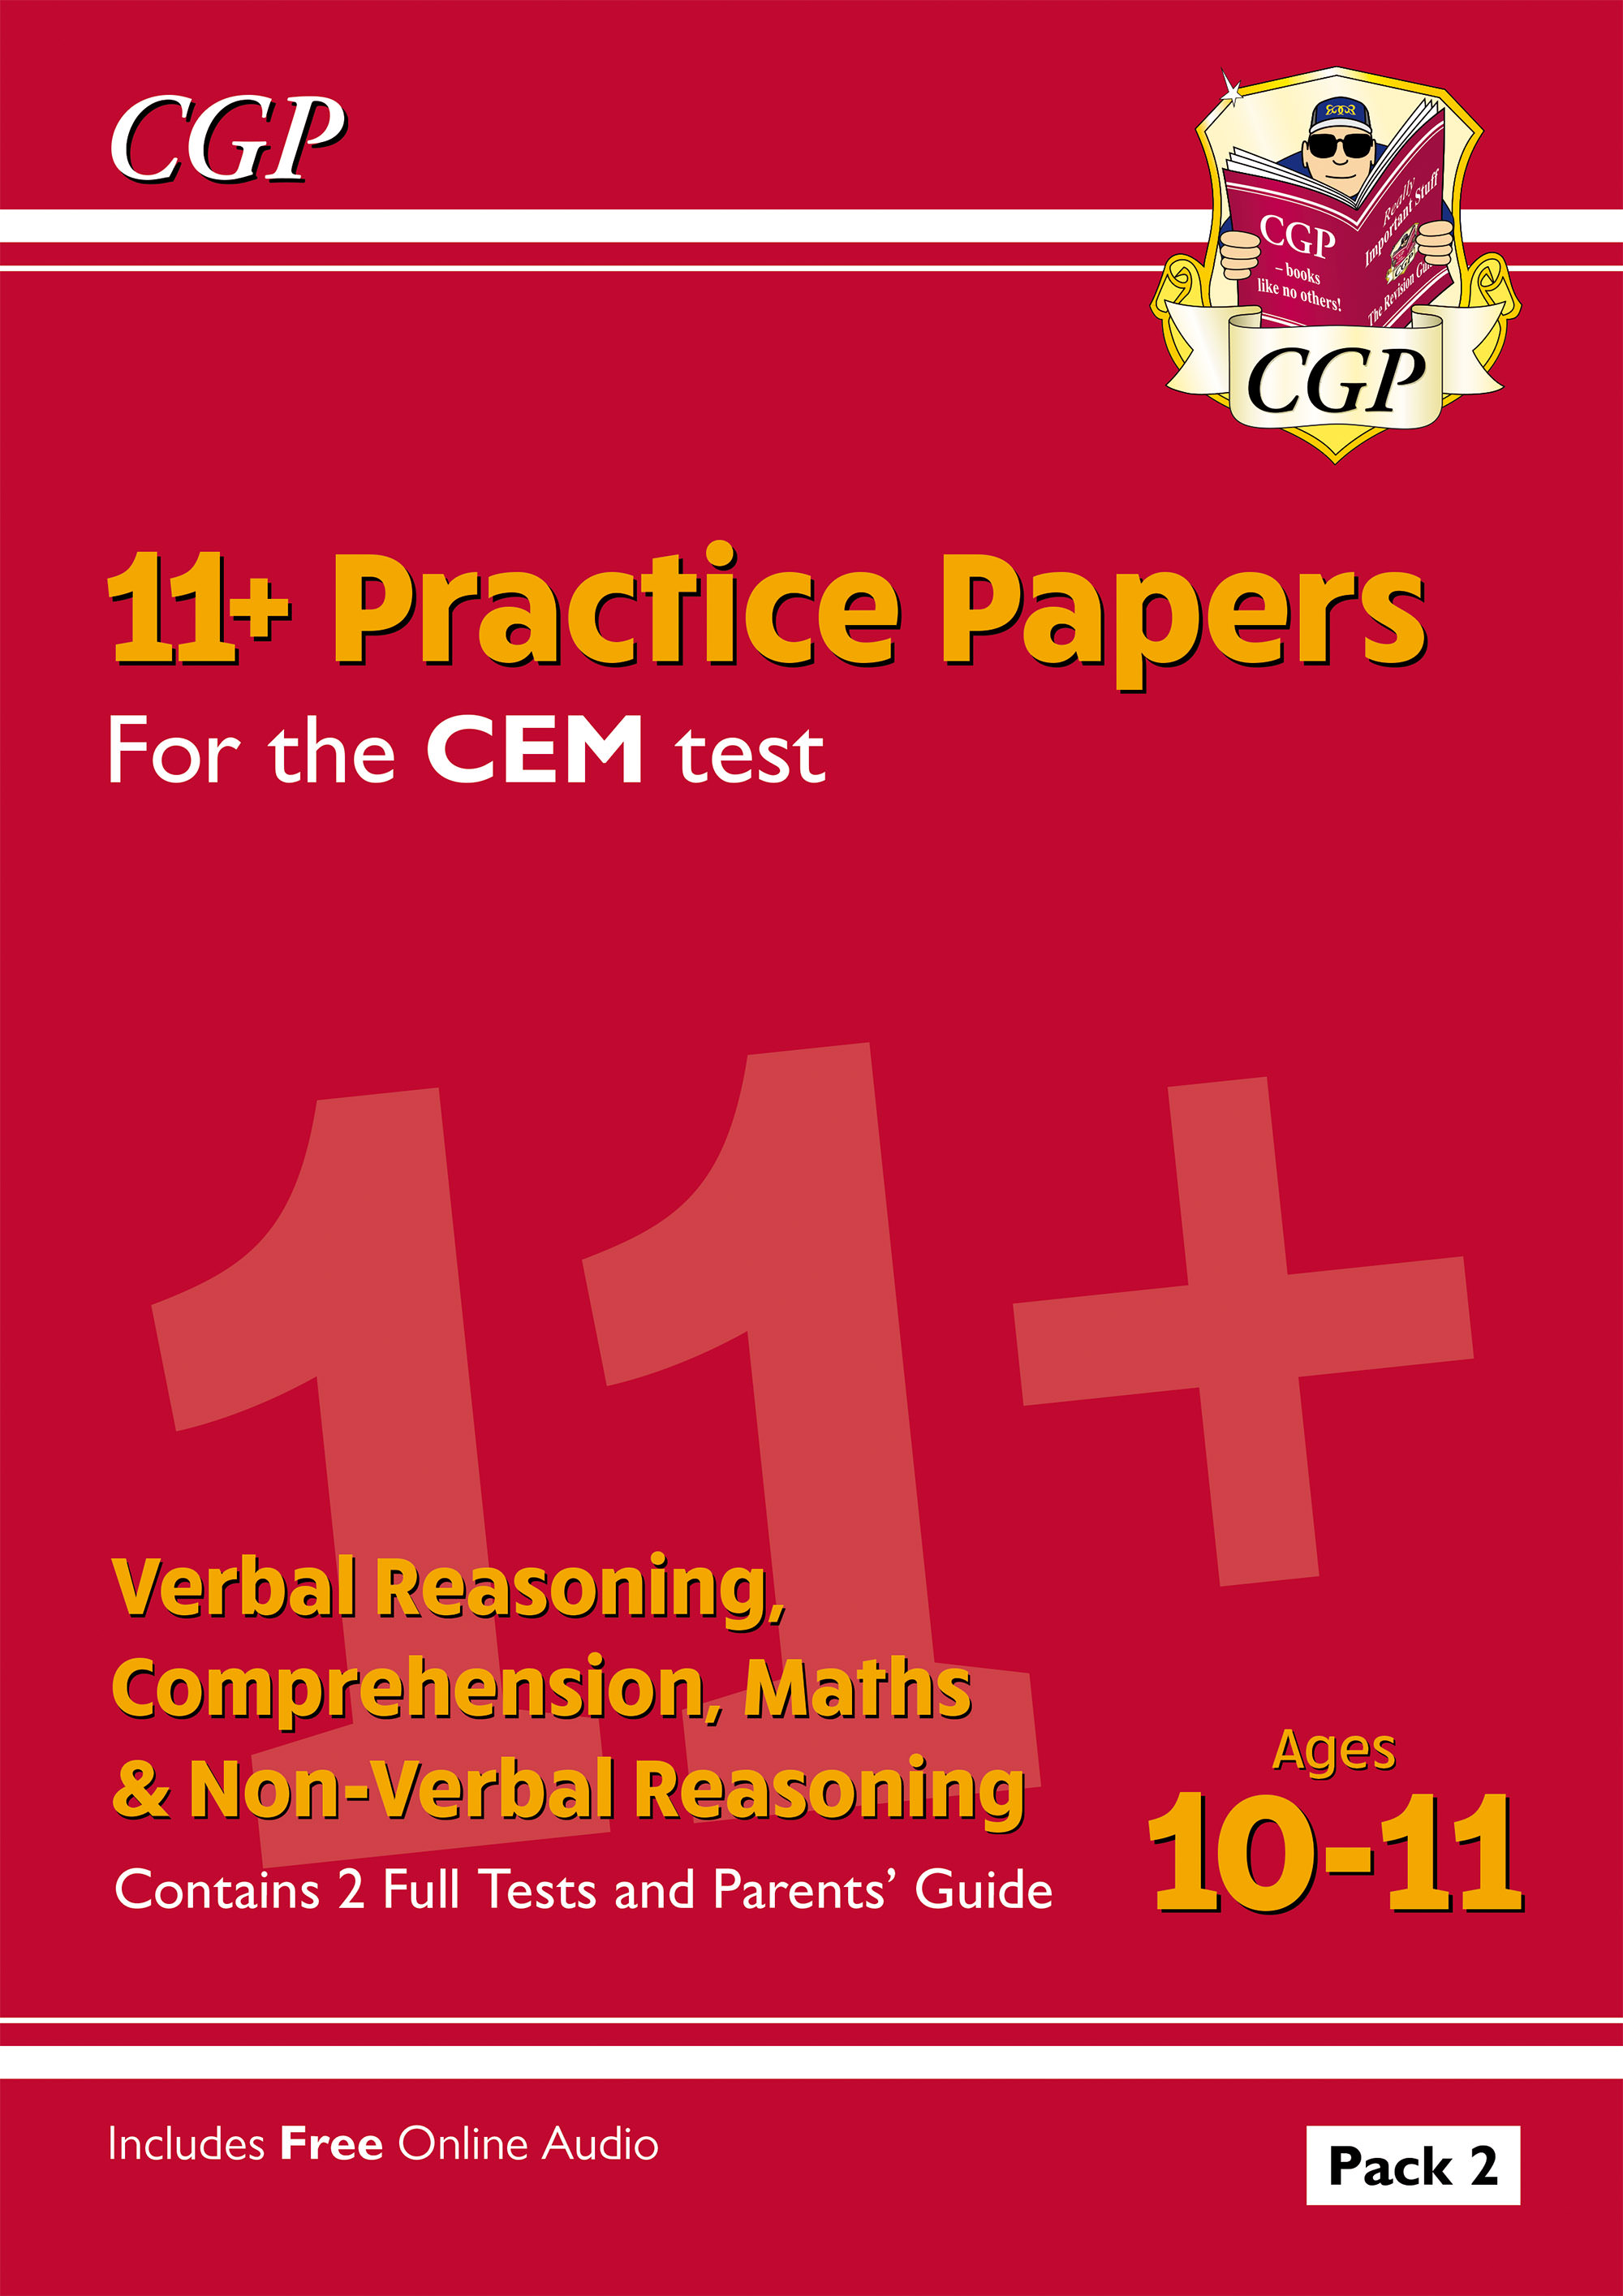 ELP2DE2DK - New 11+ CEM Practice Papers: Ages 10-11 - Pack 2 (with Parents' Guide)